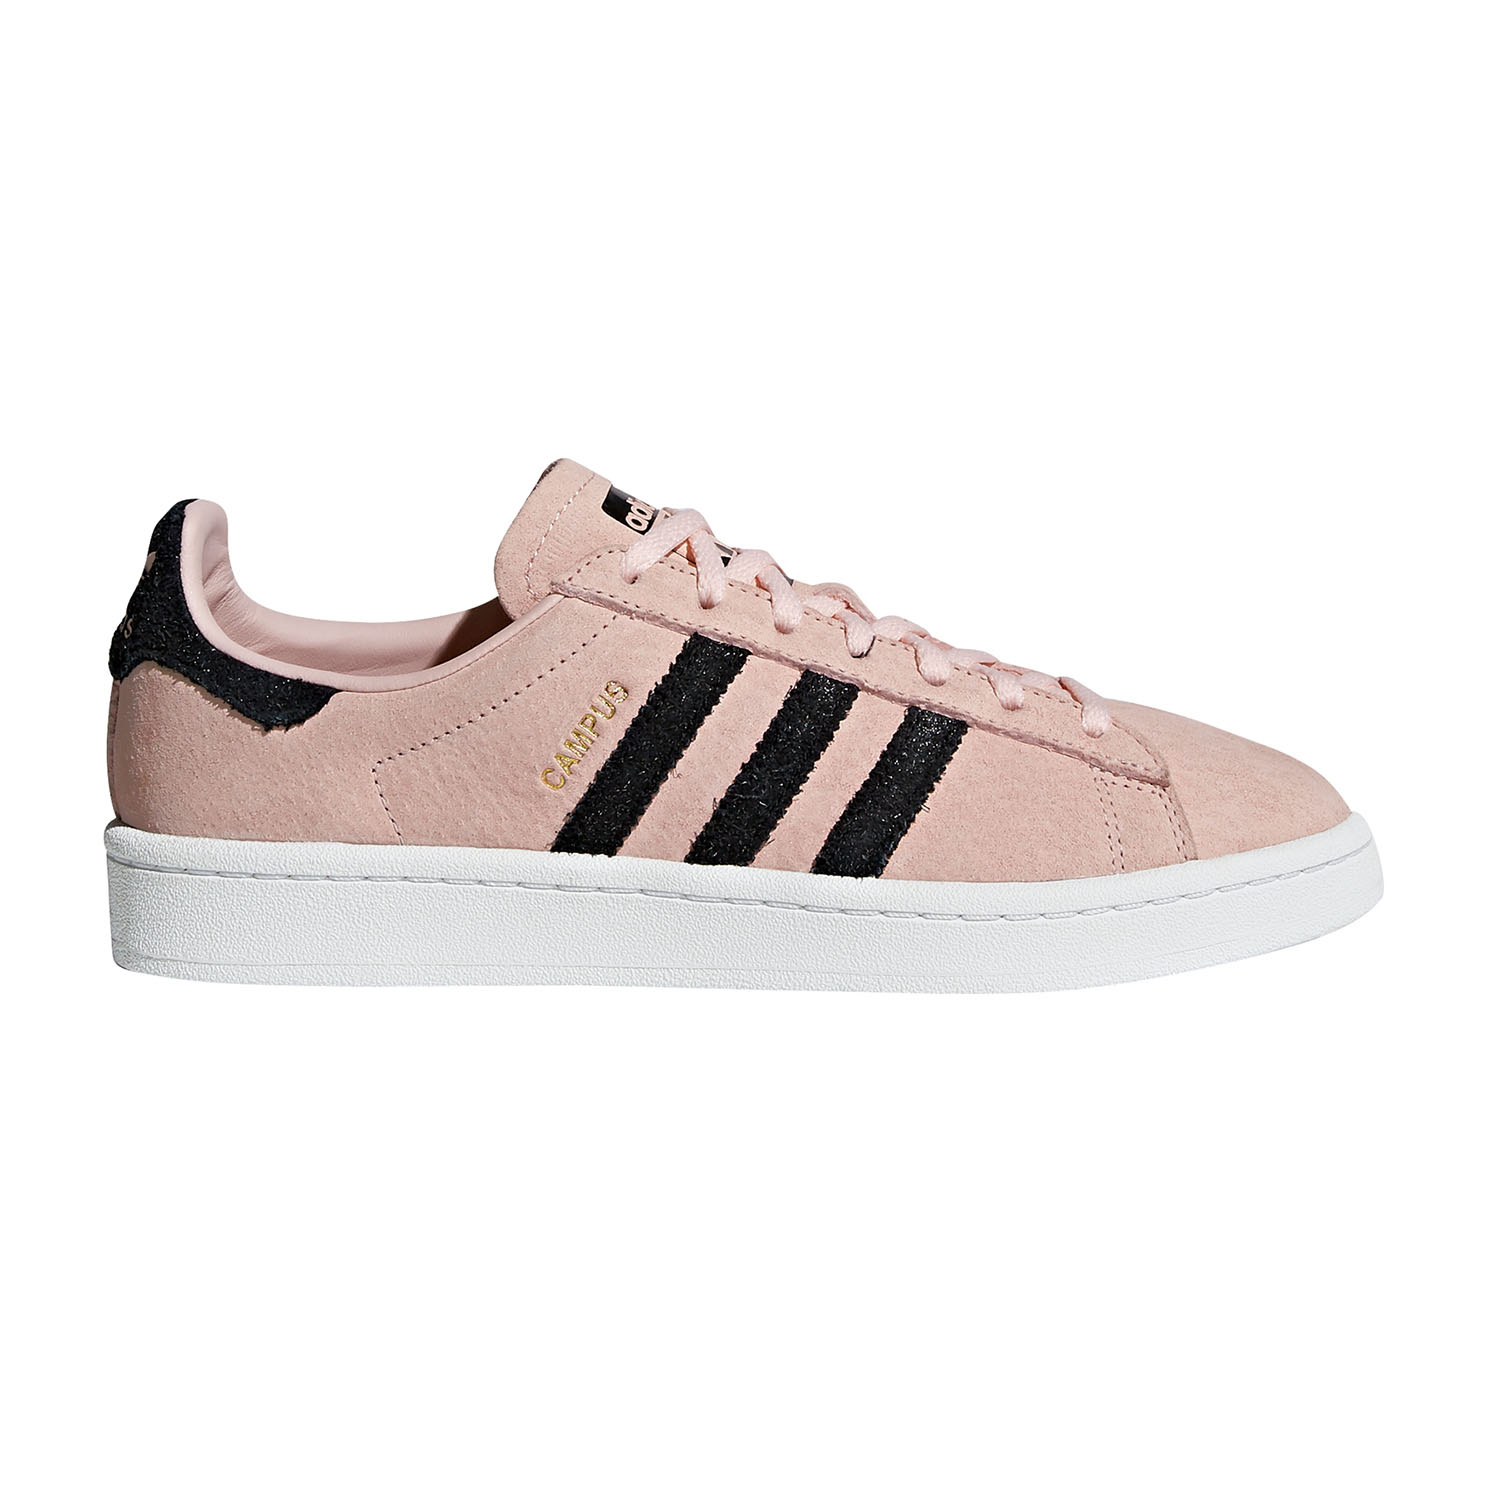 993acad25d -30% All About Sneakers adidas Originals Campus W ( B37934 )